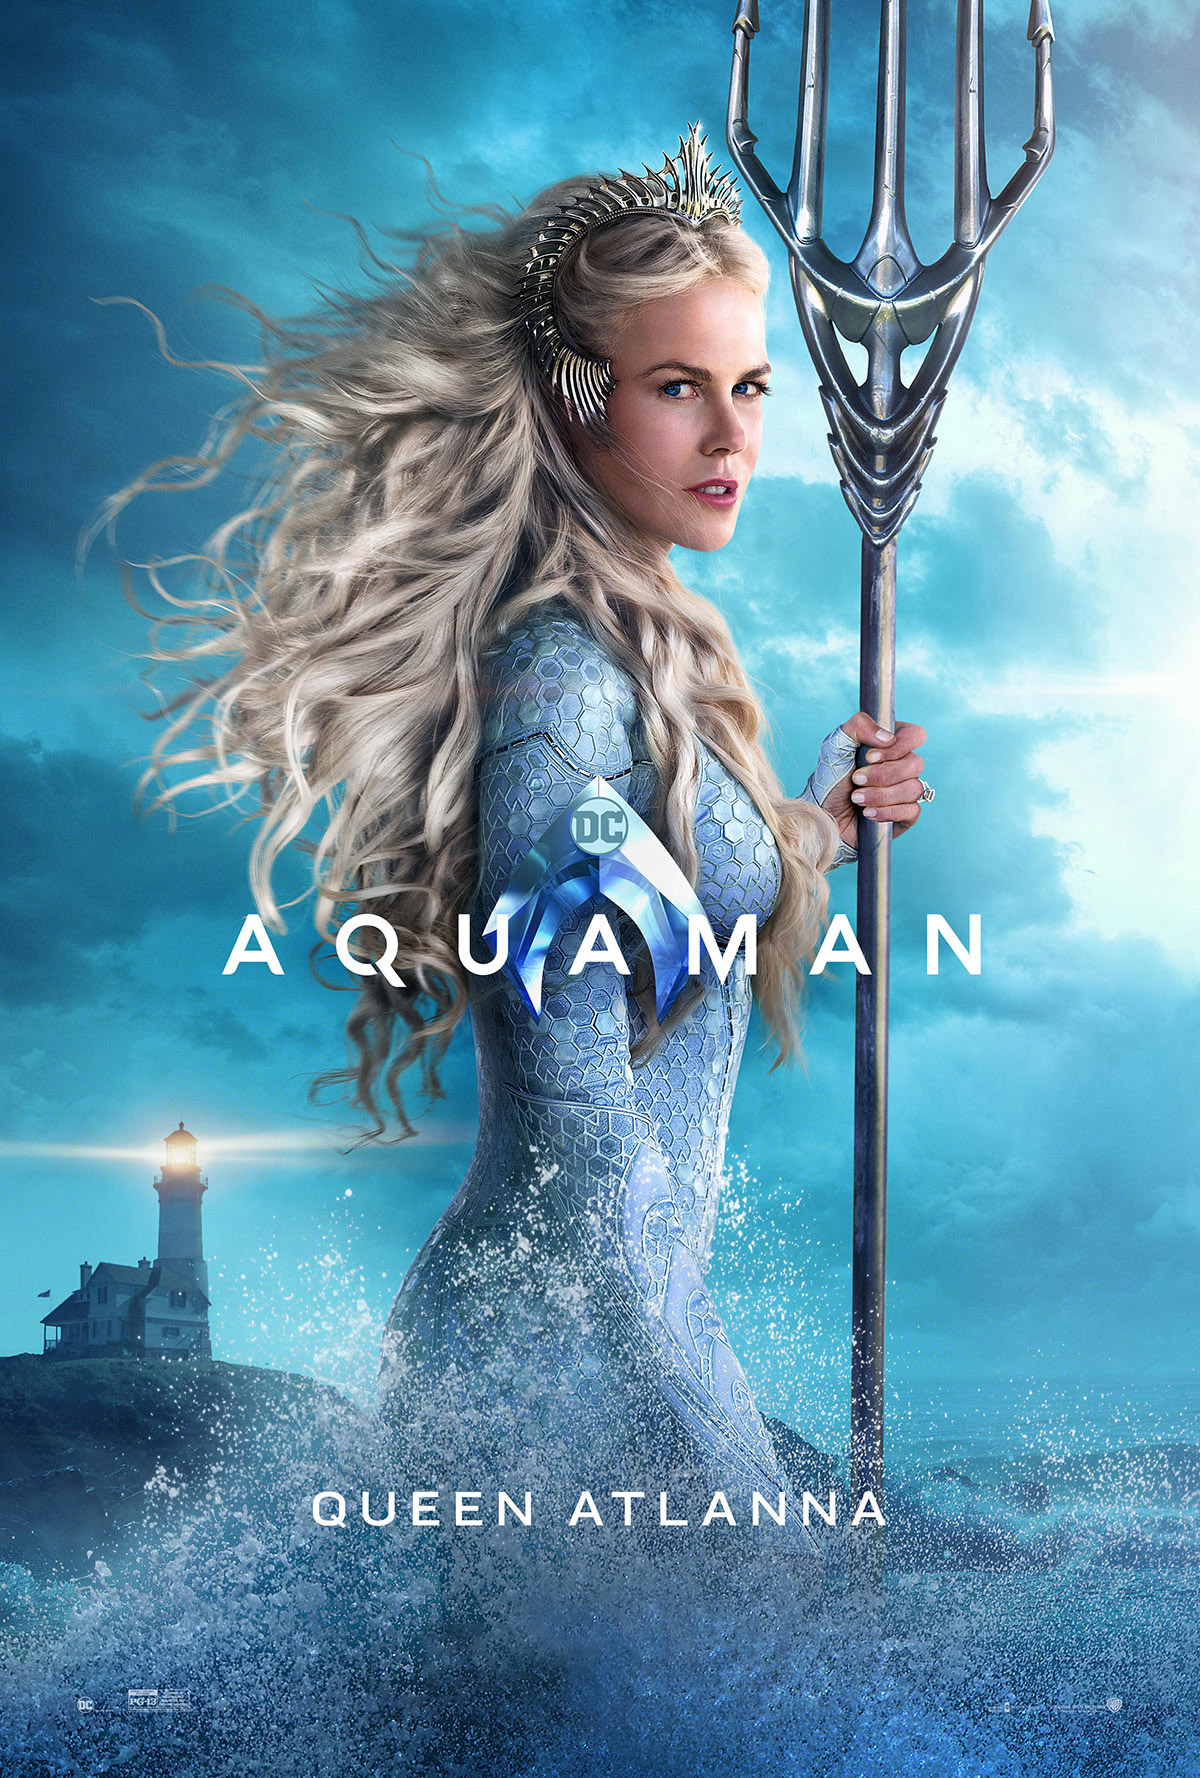 Aquaman Movie Official Website Available Now On Blu Ray And Digital